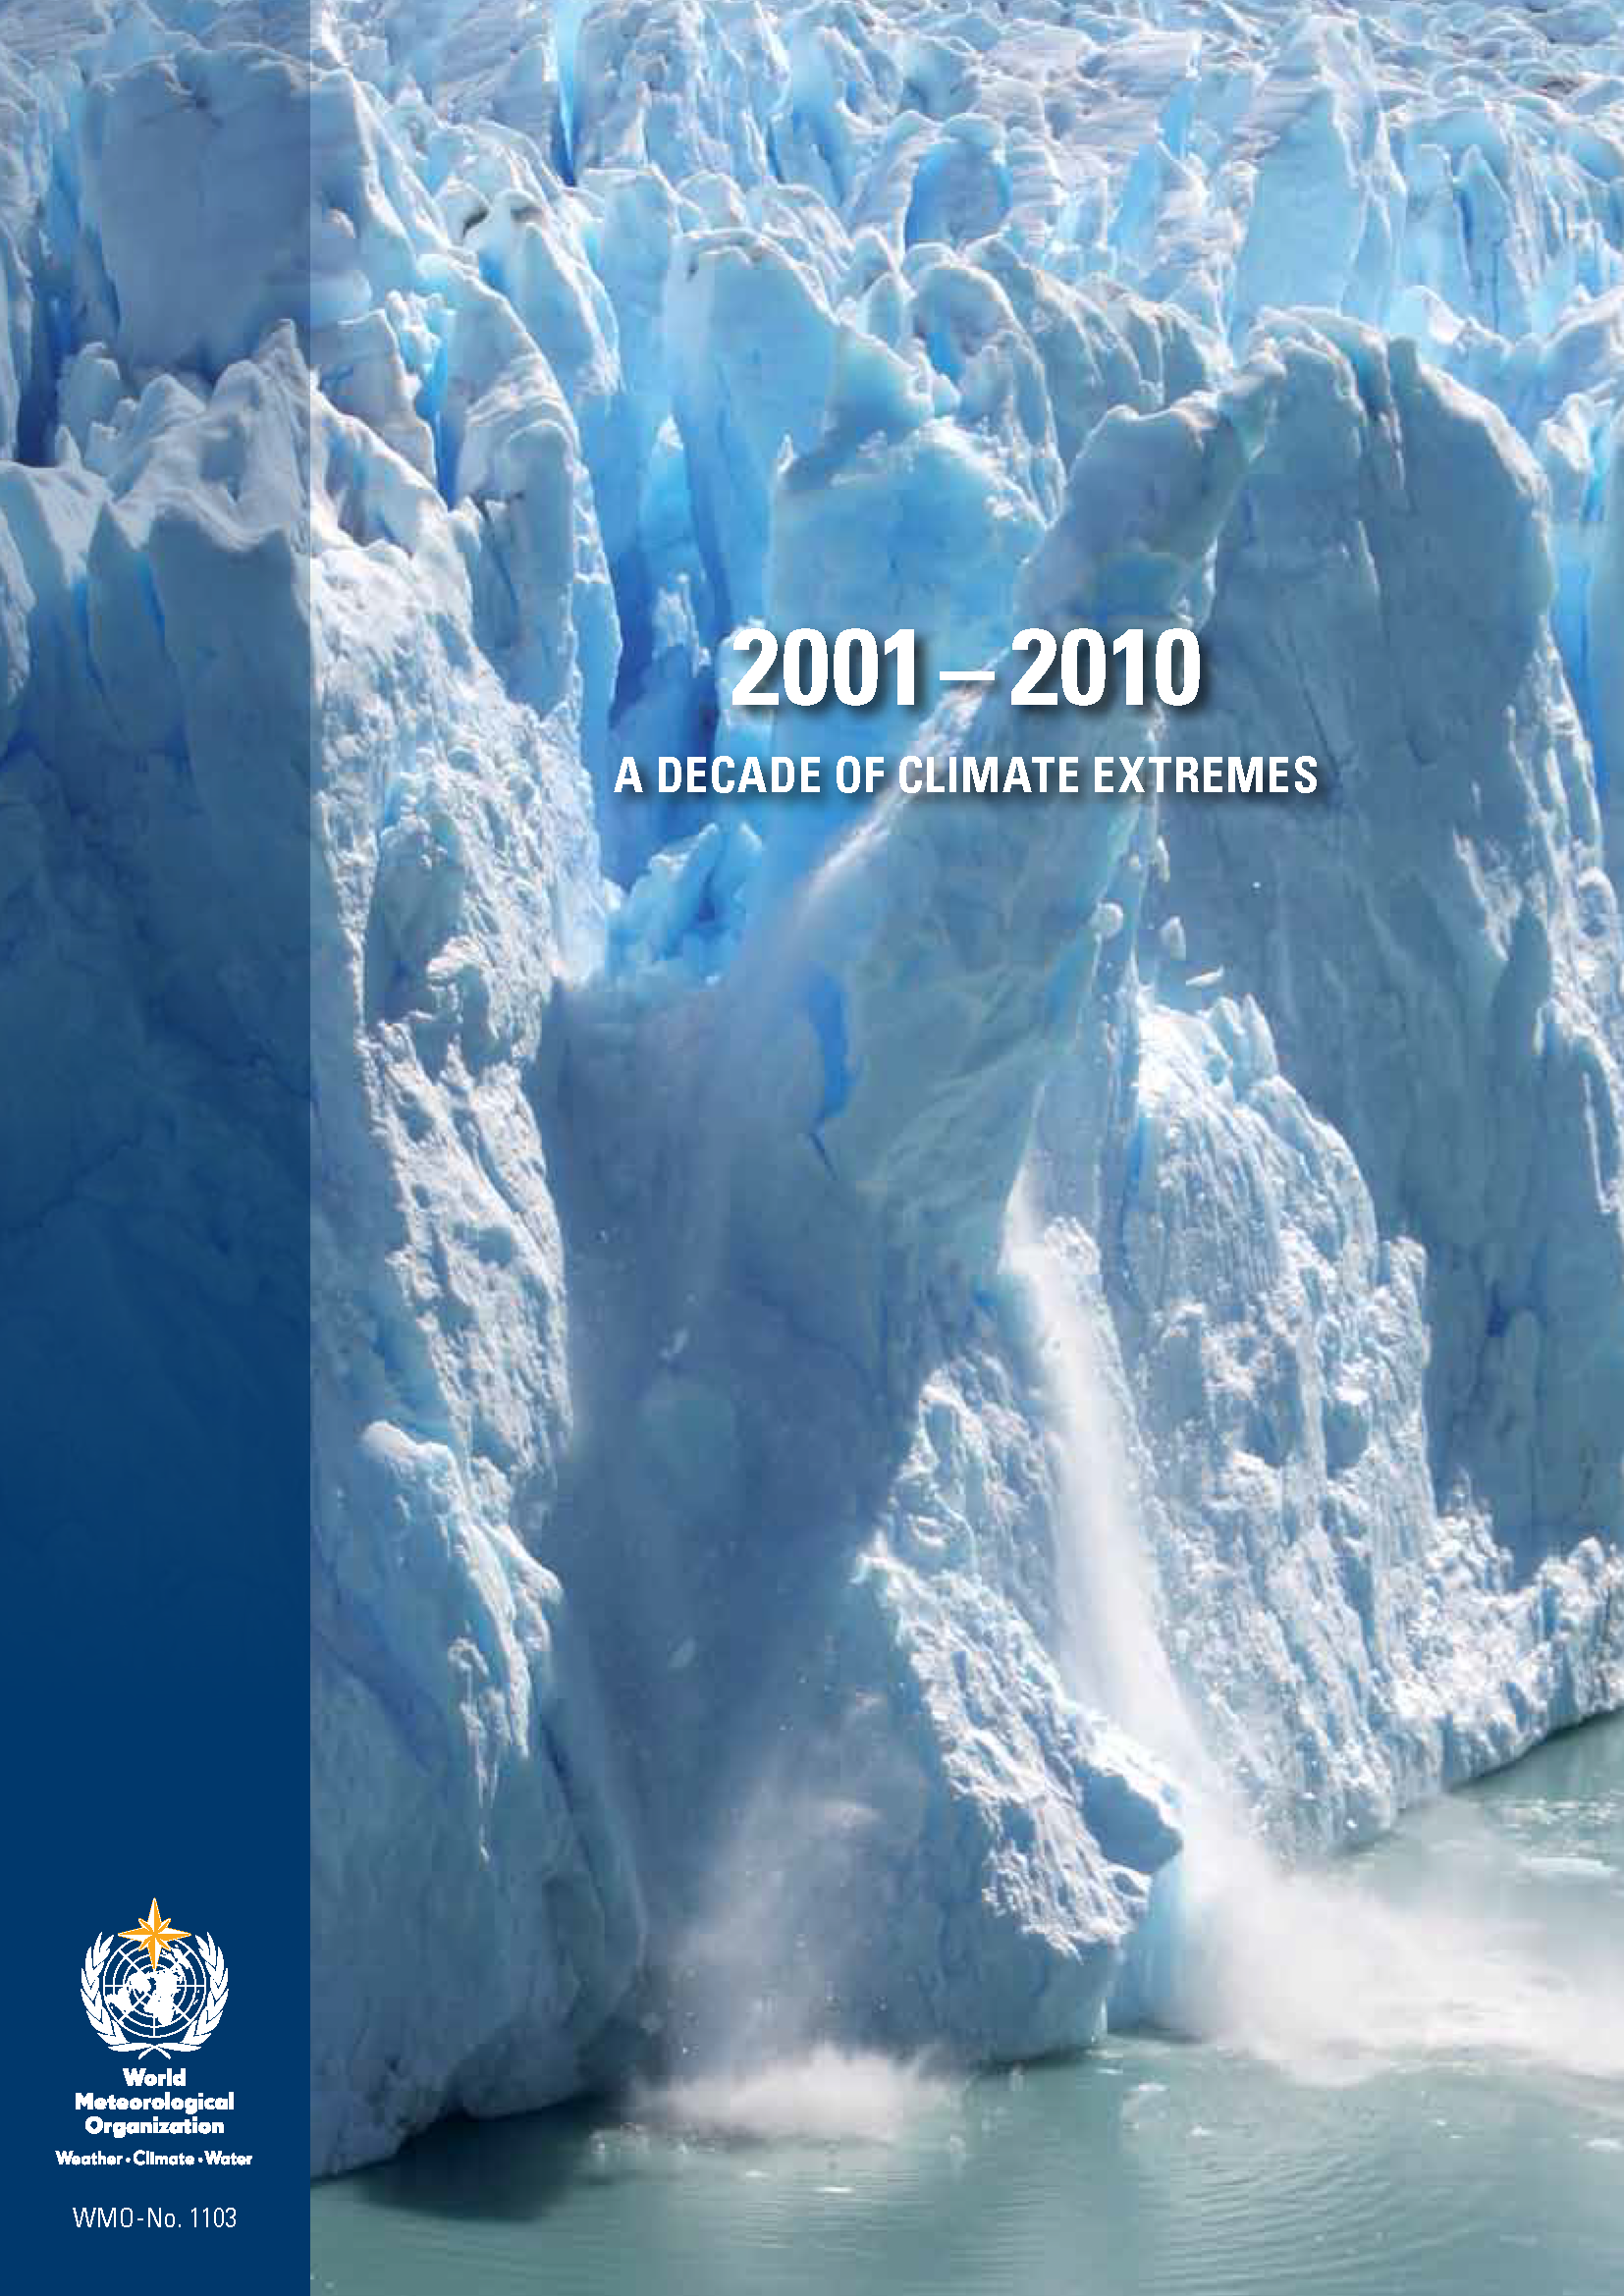 Capa da The global climate 2001 - 2010. A decade of climate extremes